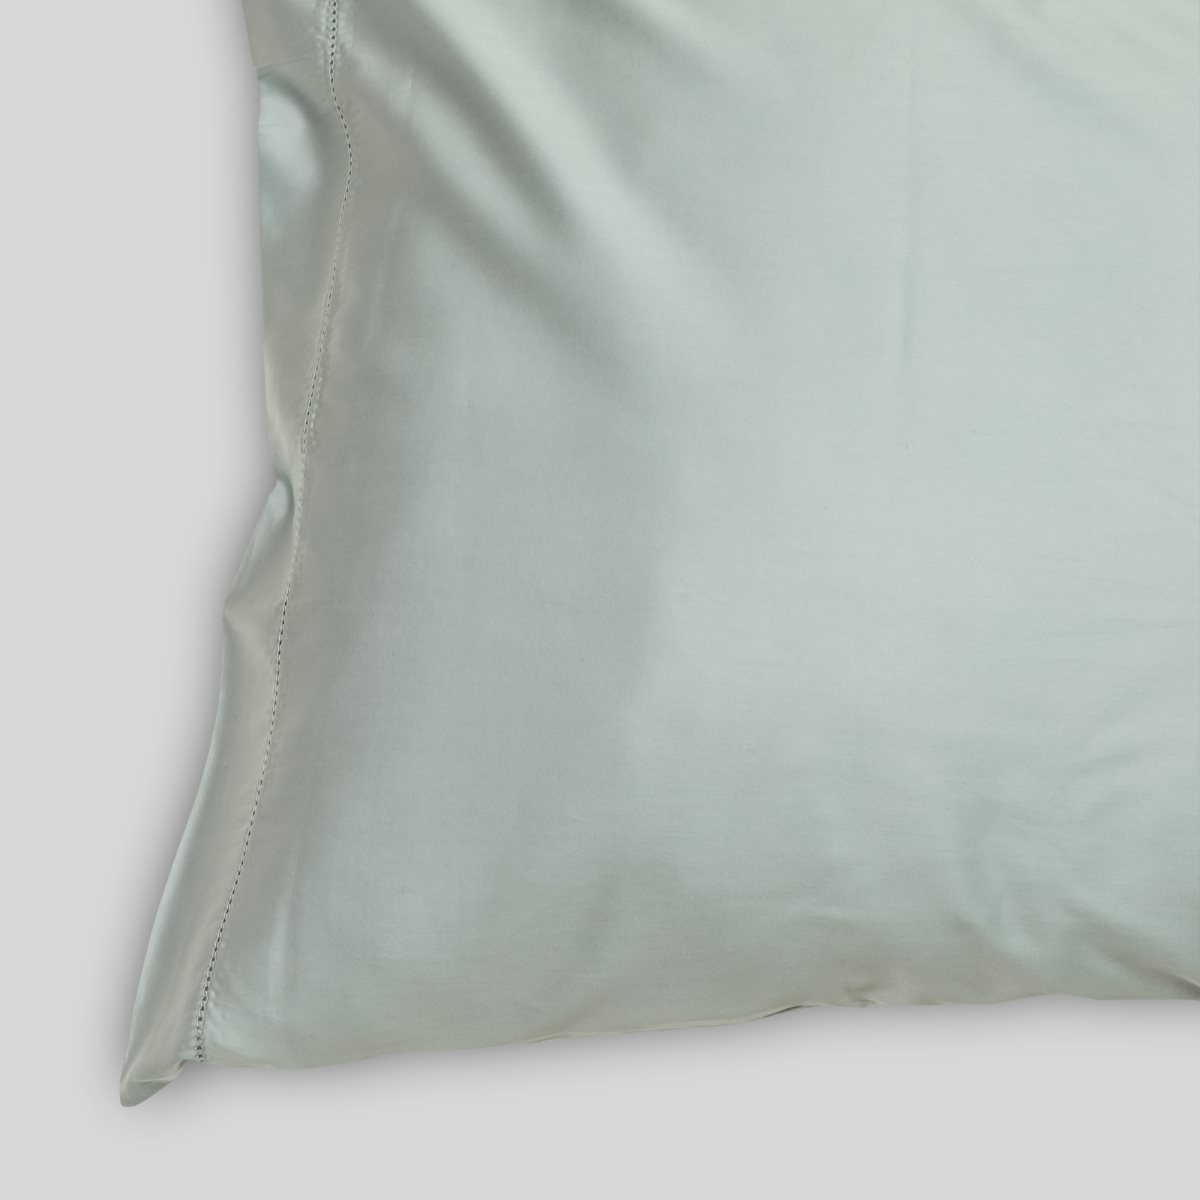 preview of cream pillowcase